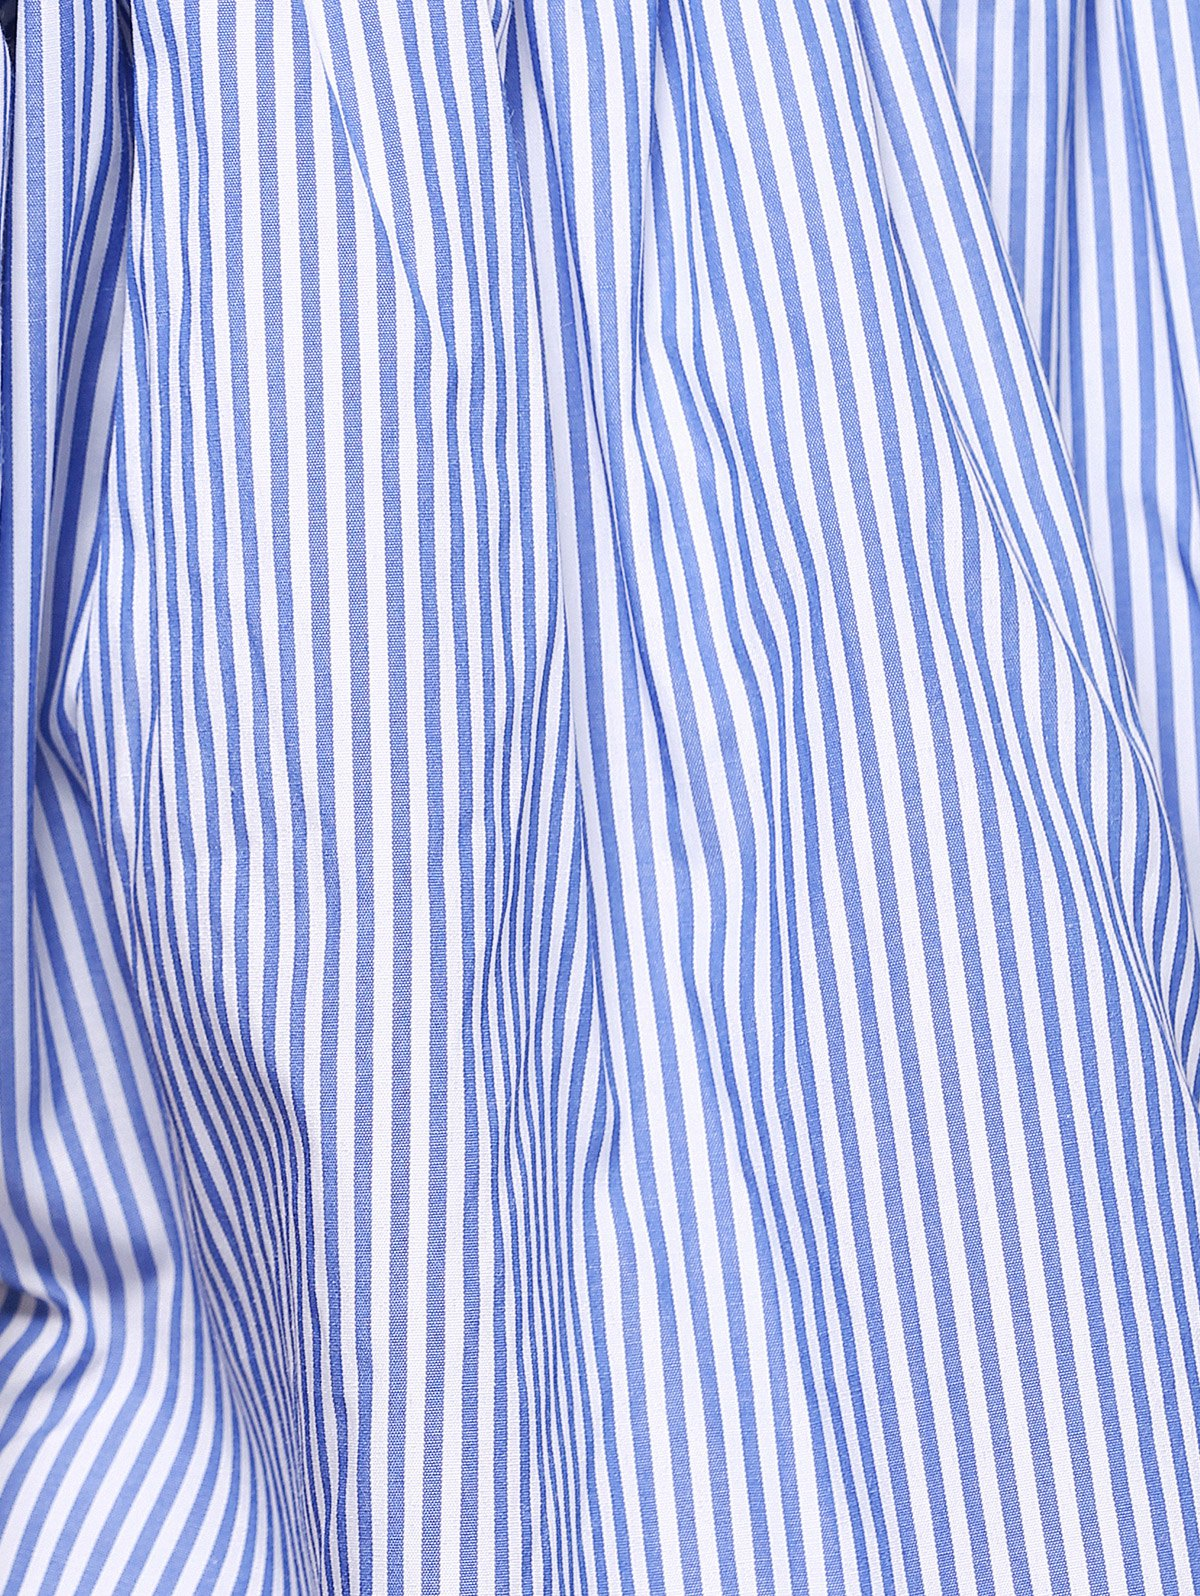 Stylish Pinstriped Off The Shoulder Blouse For Women - BLUE/WHITE S